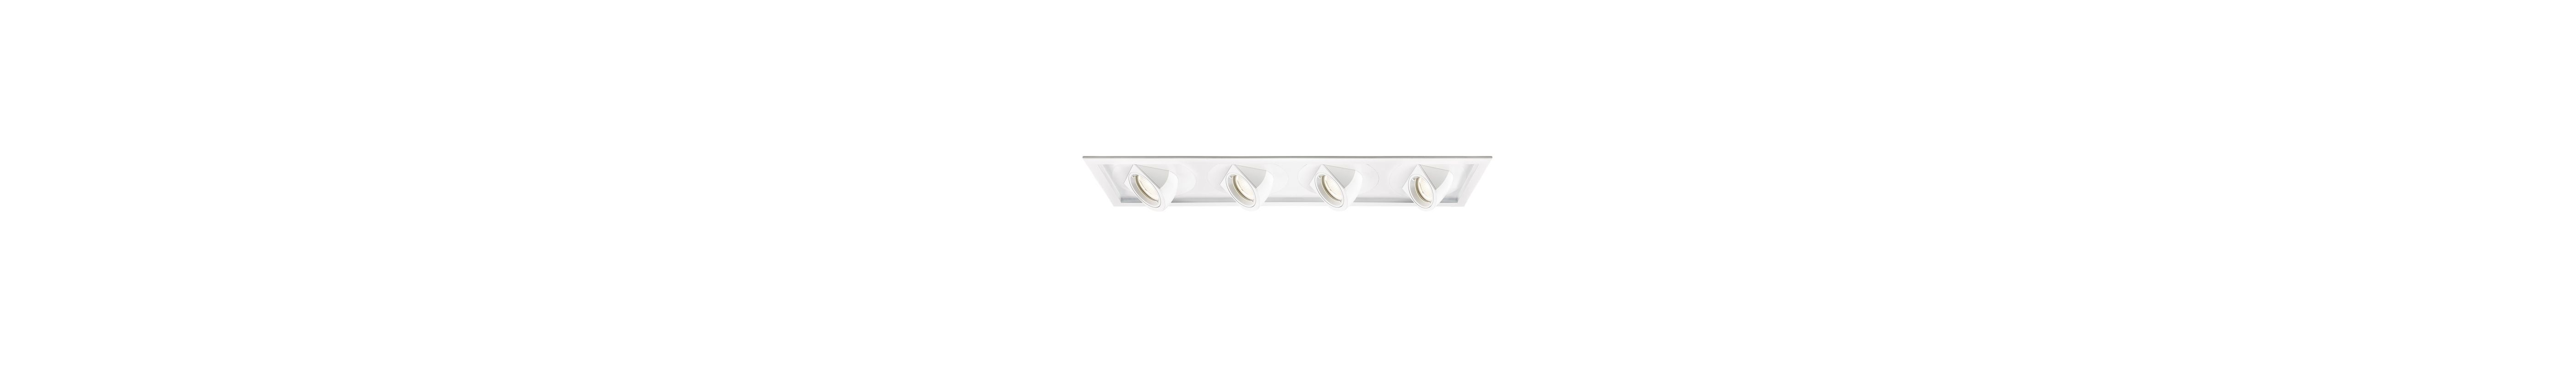 WAC Lighting MT-5LD425T-S927 Multiple Spot 2700K High Output LED